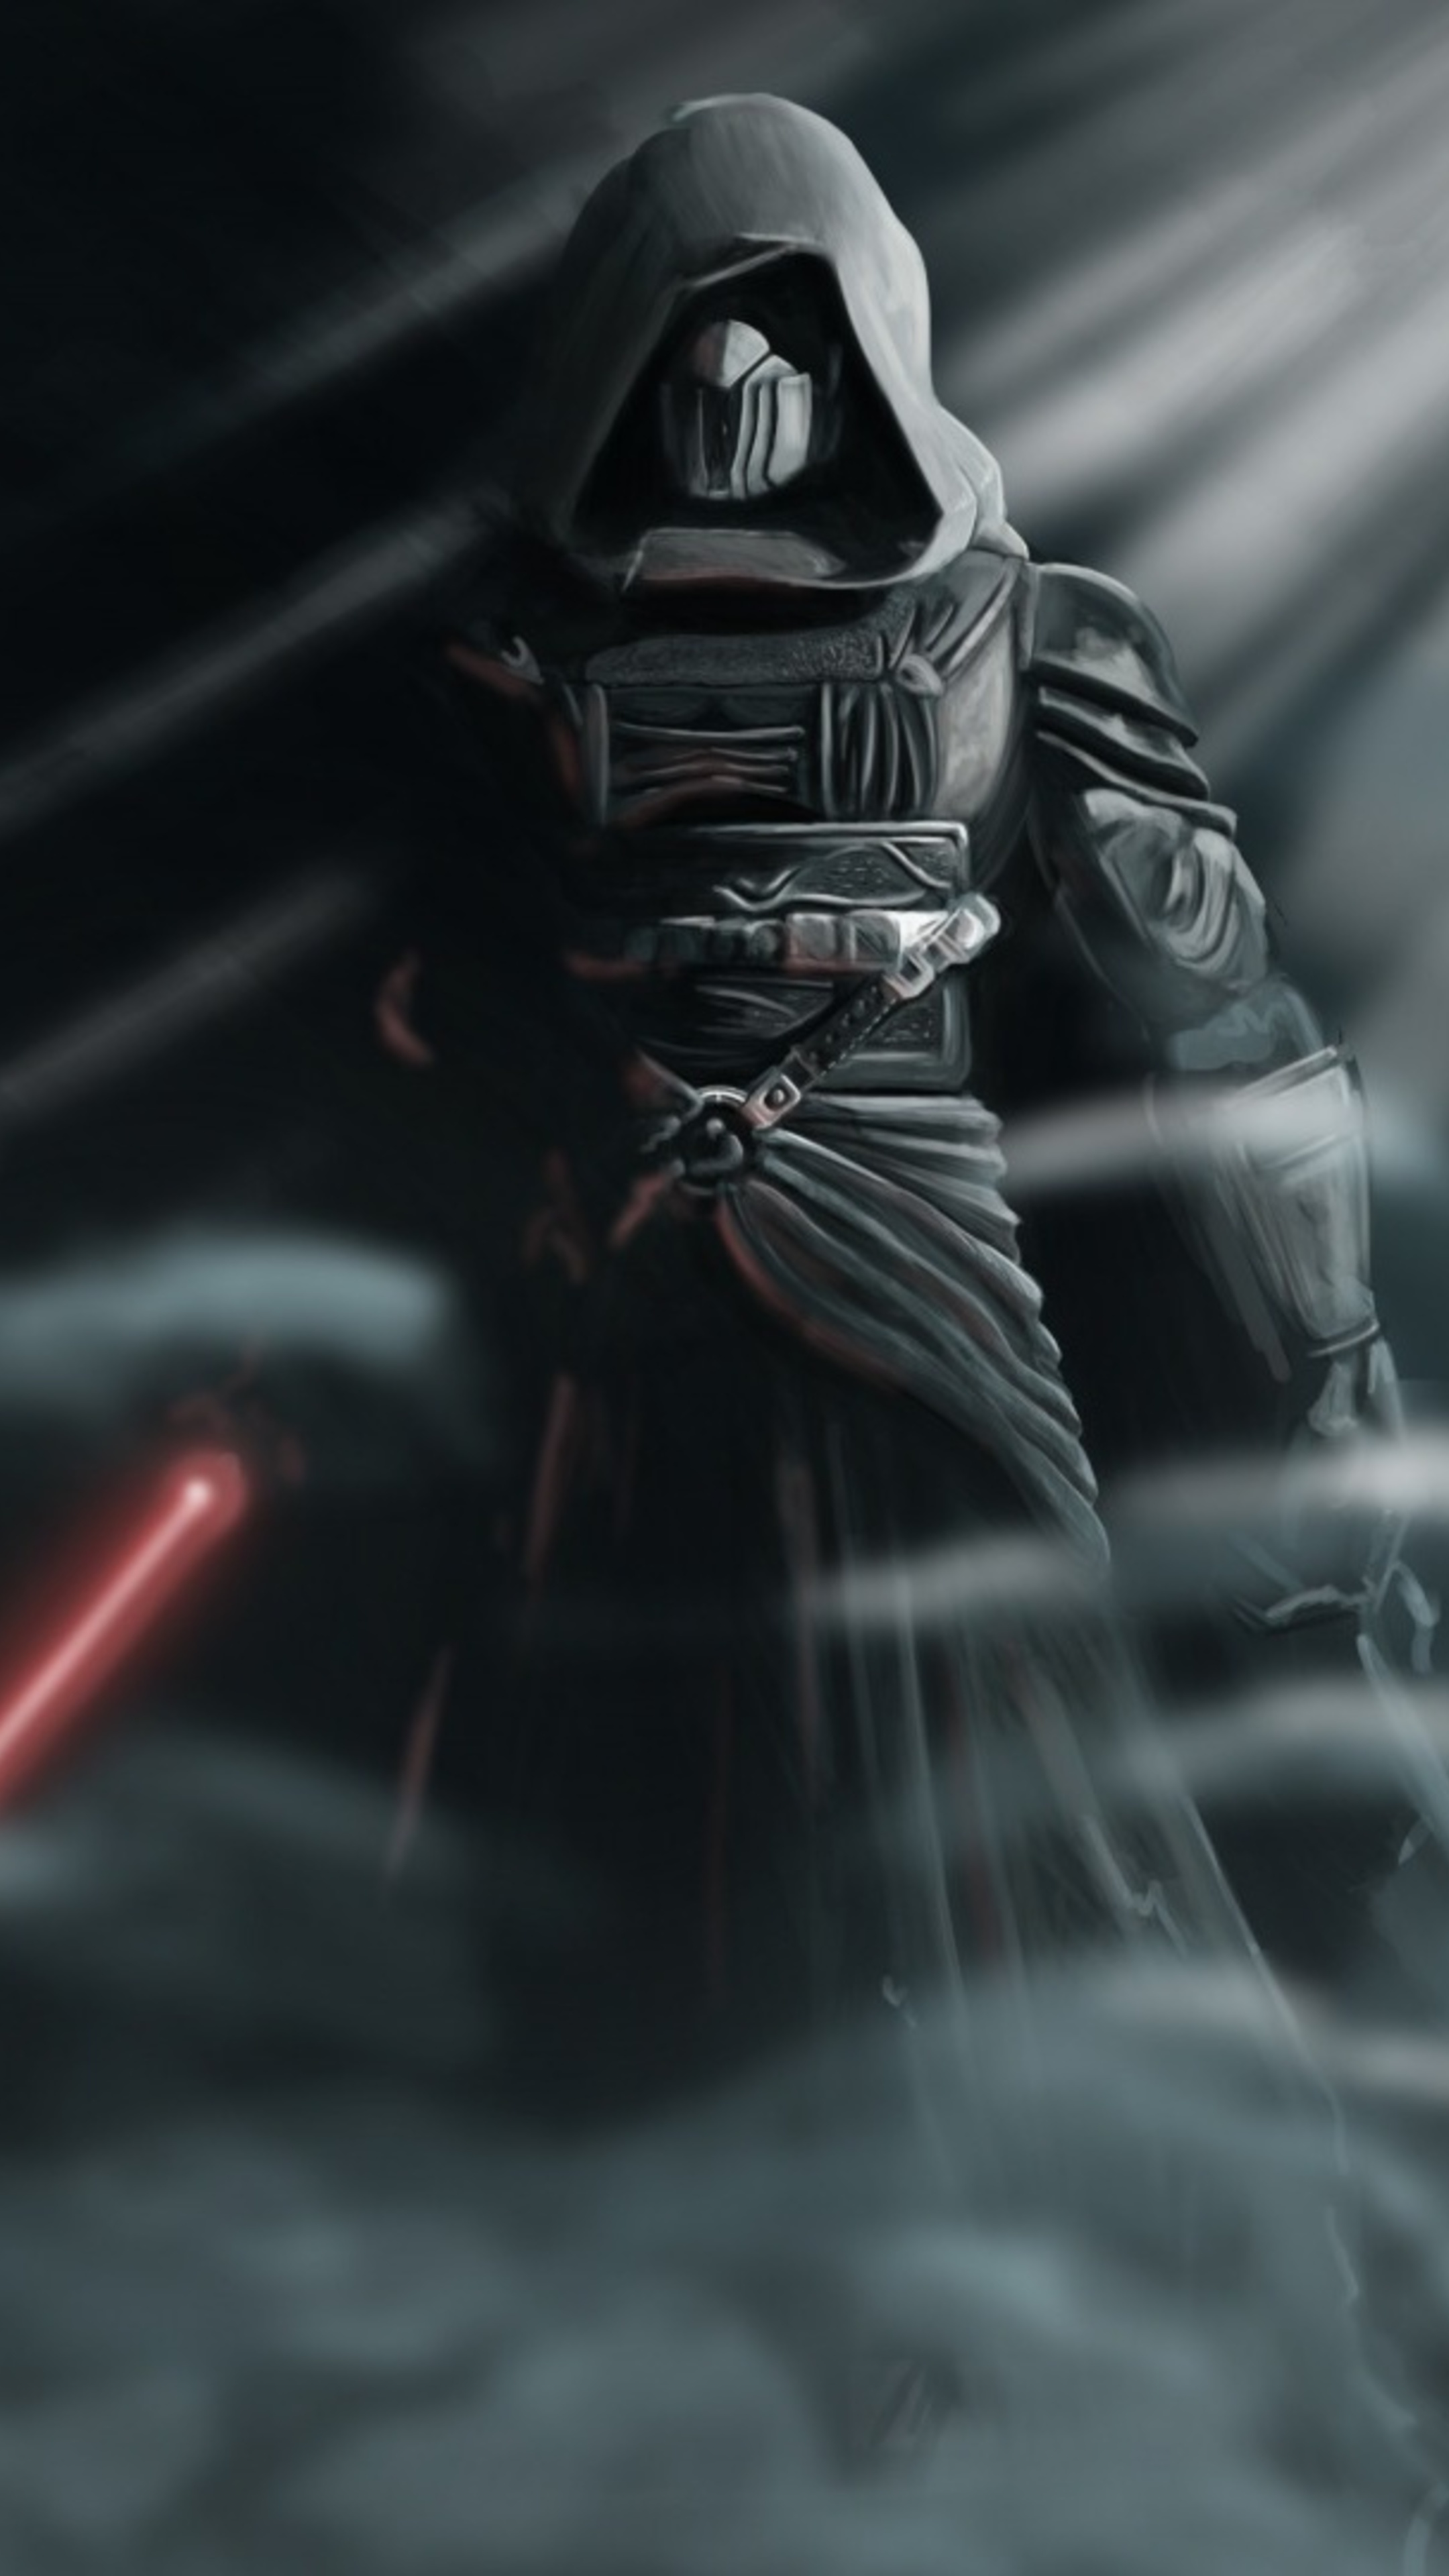 2160x3840 Darth Revan Star Wars With Lightsaber Sony Xperia